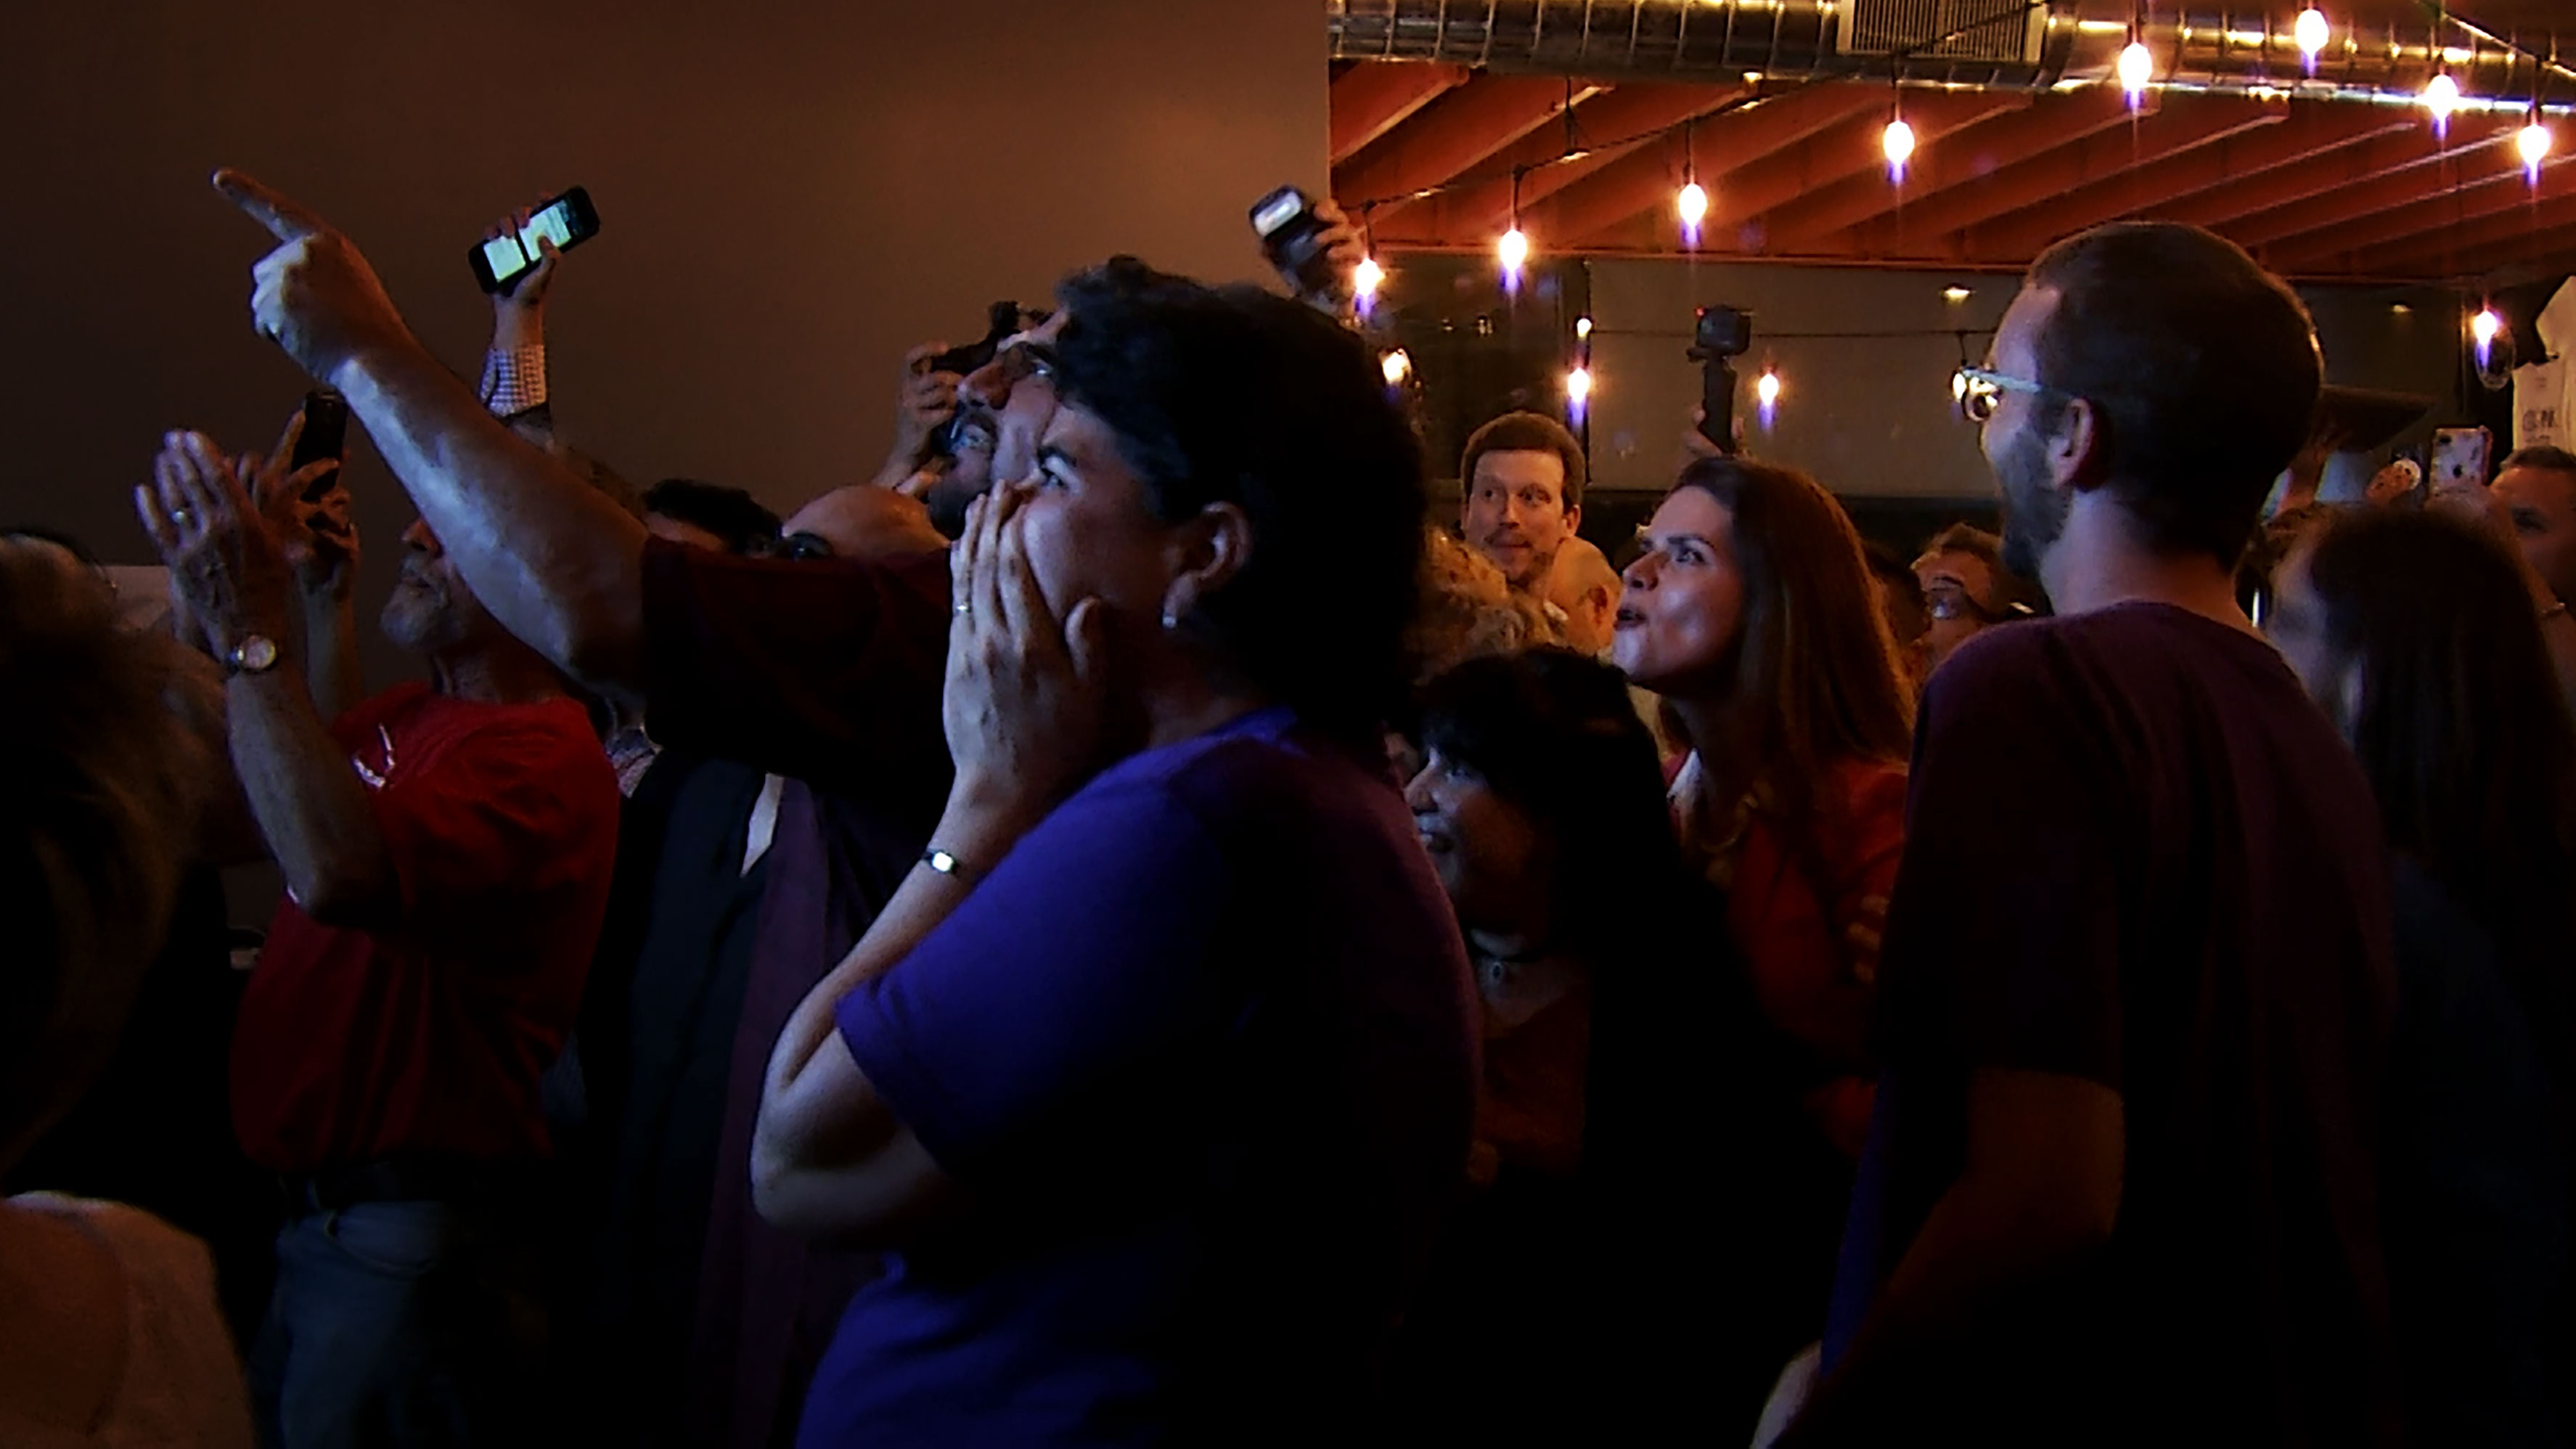 Surrounded by her supporters, Tucson city councilwoman and Democratic mayoral candidate Regina Romero reacts to the results from Tucson's primary election at American Eat Company on August 27, 2019.